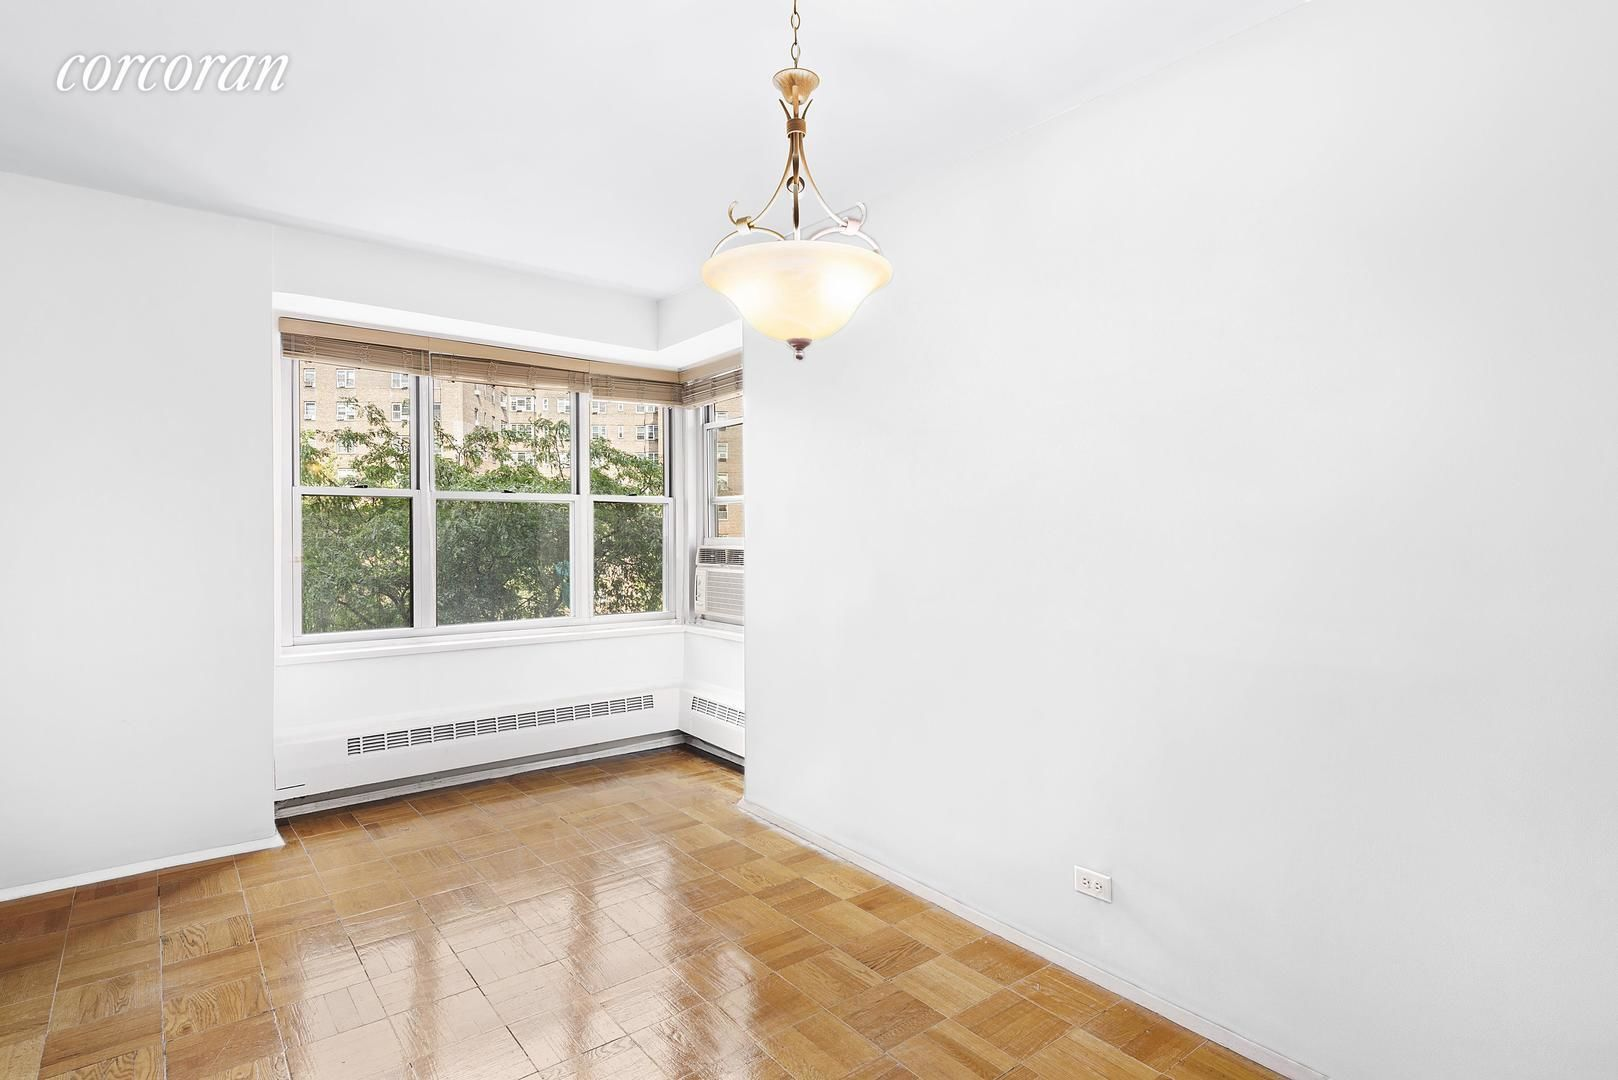 Apartment for sale at 570 Grand Street, Apt H601